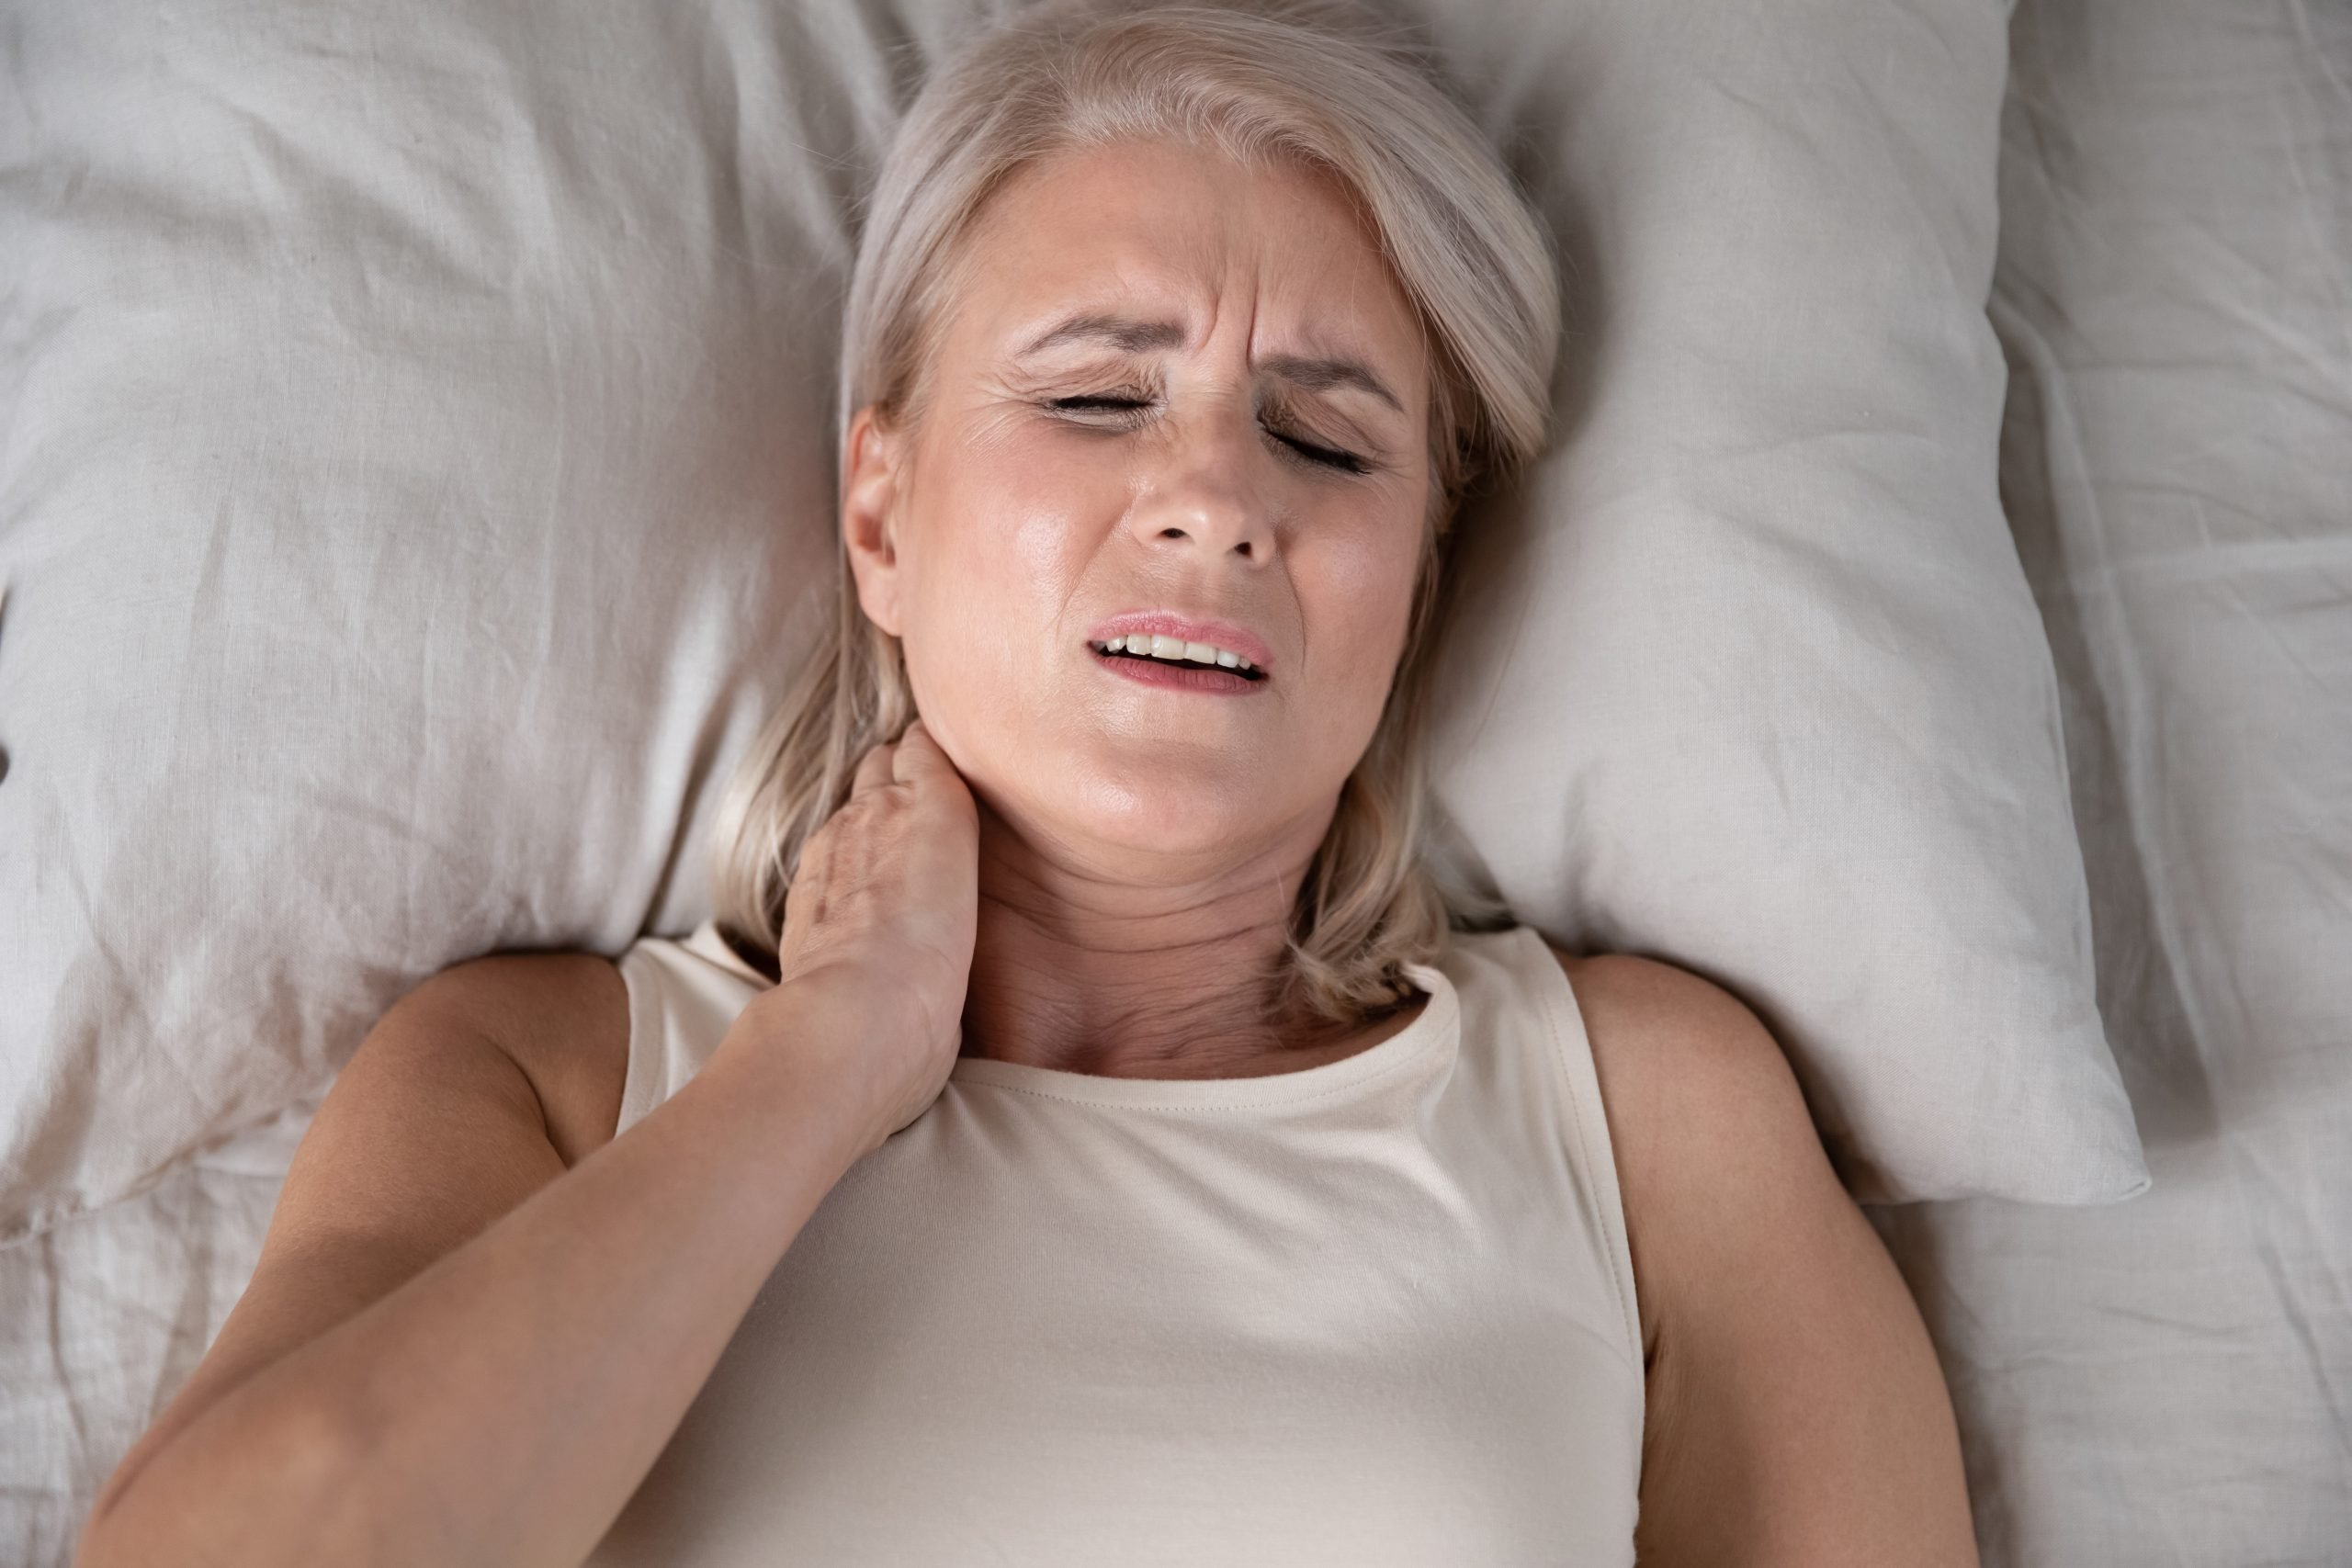 Neck Pain From Sleeping Wrong | Feel Good Life with Coach Todd